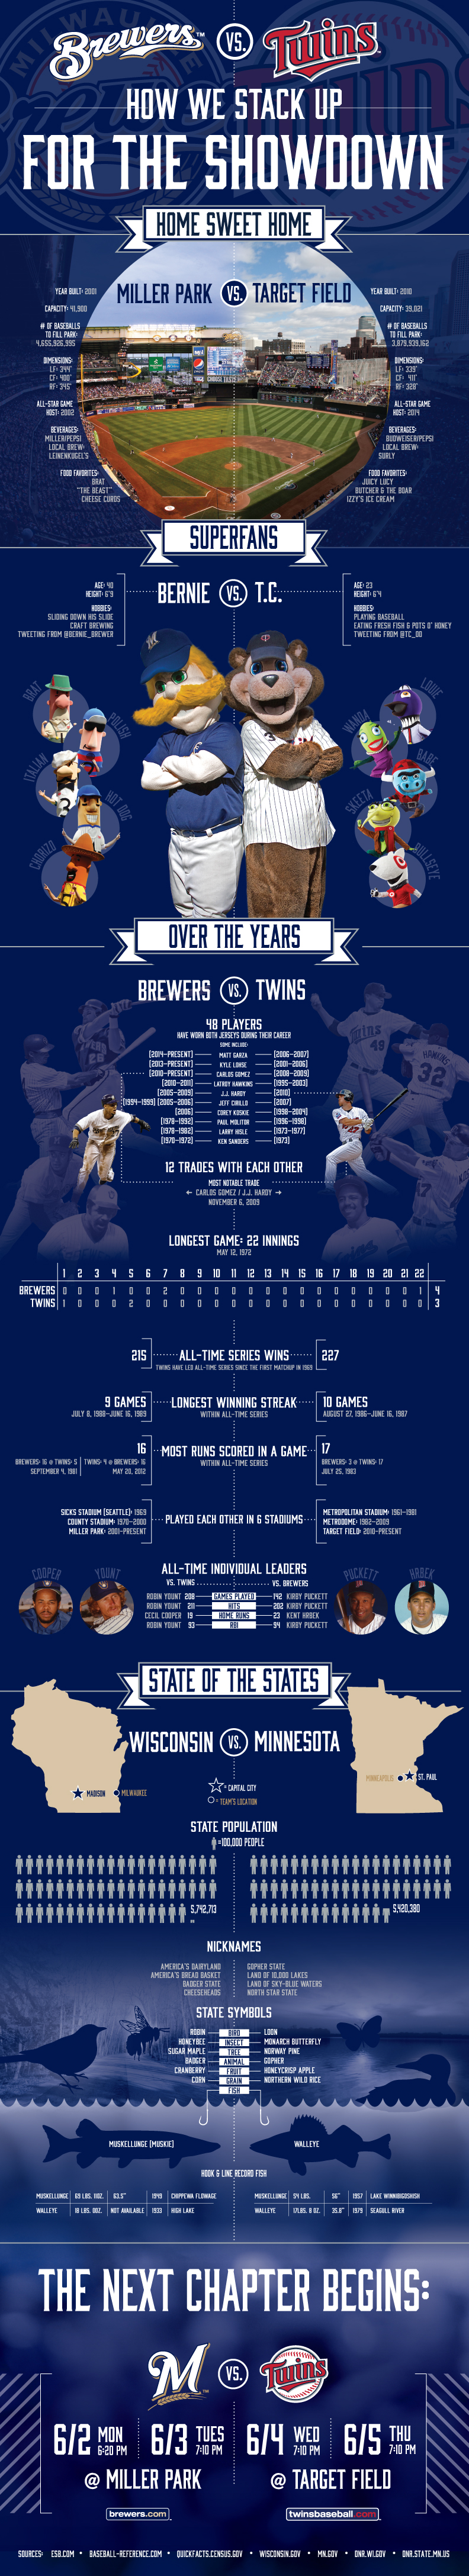 2014-Brewers-vs-Twins-Large-Infographic-Graphic